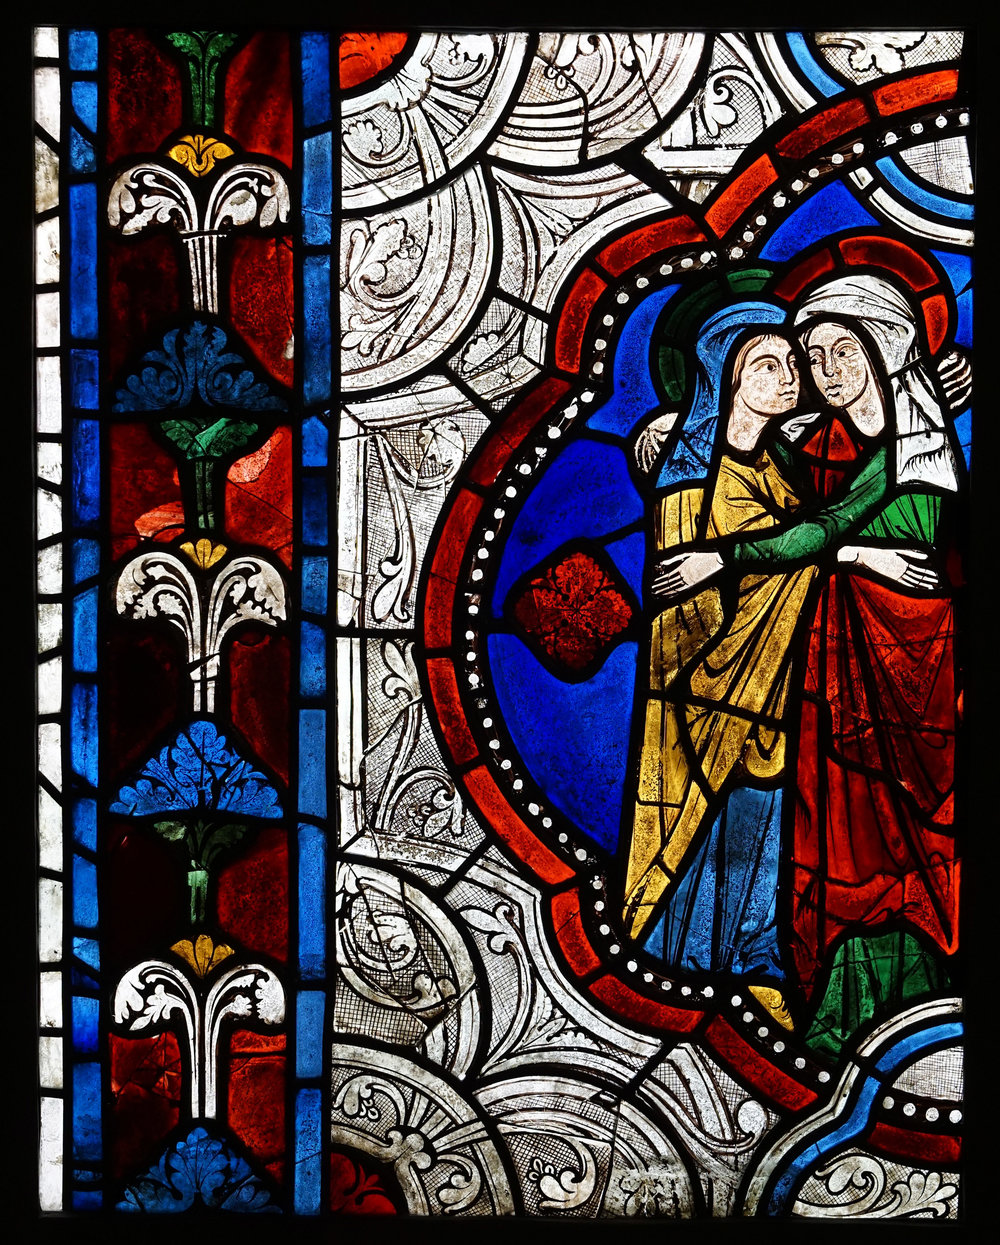 Figure 1: The Visitation. From the Church of Sainte-Radegonde in Poitiers, France, c. 1270-75. Now in Glencairn Museum, Bryn Athyn, PA, 03.SG.43.